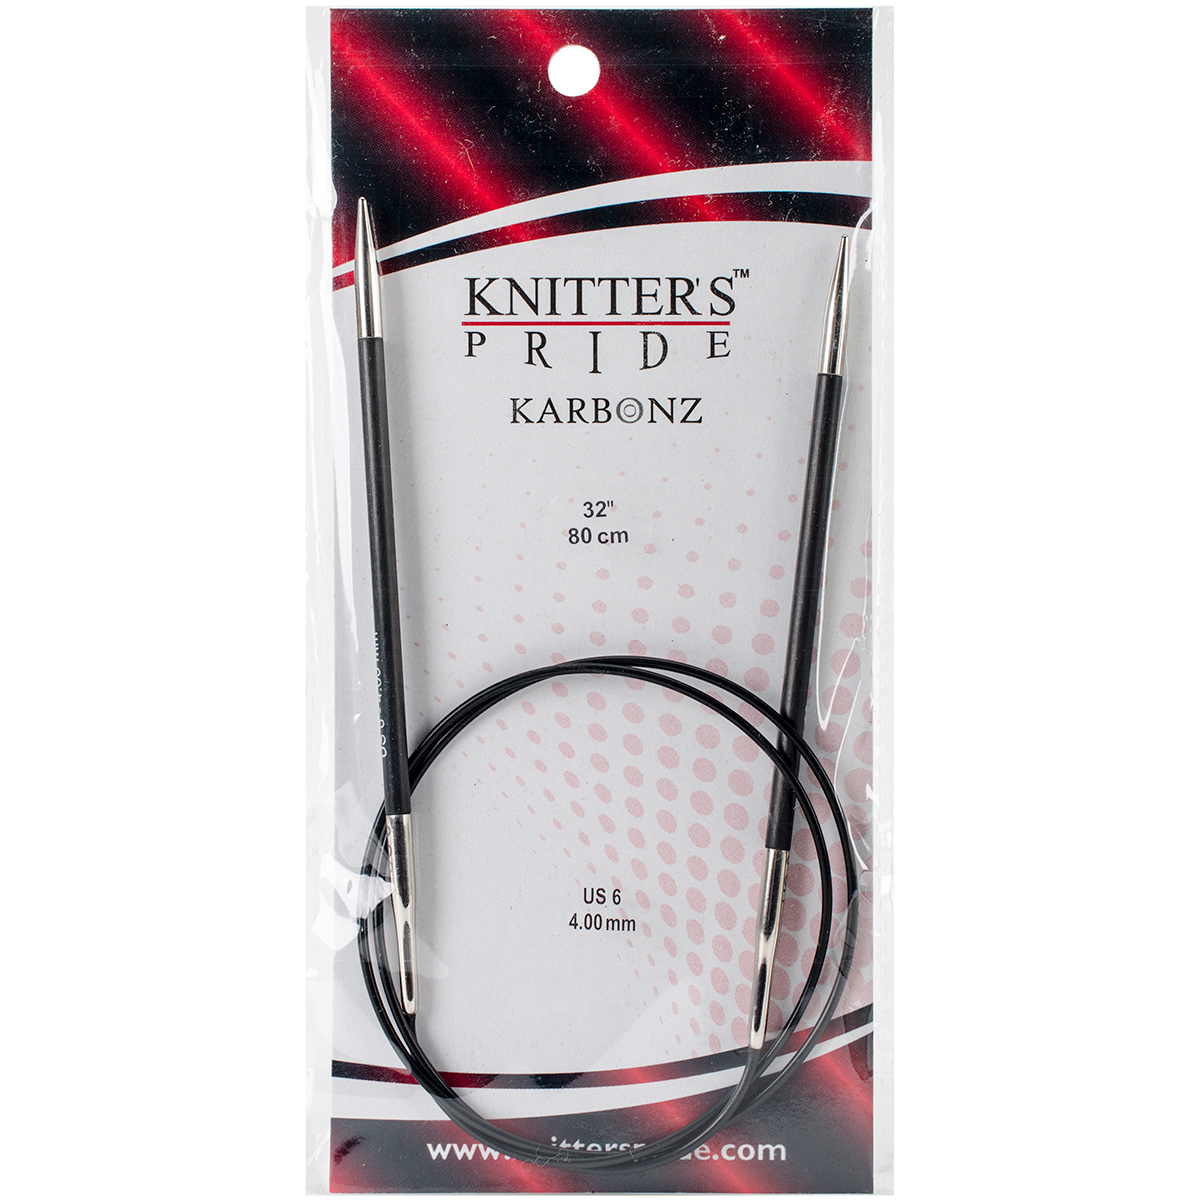 Knitter's Pride-Karbonz Fixed Circular Needles 32-Size 6/4mm